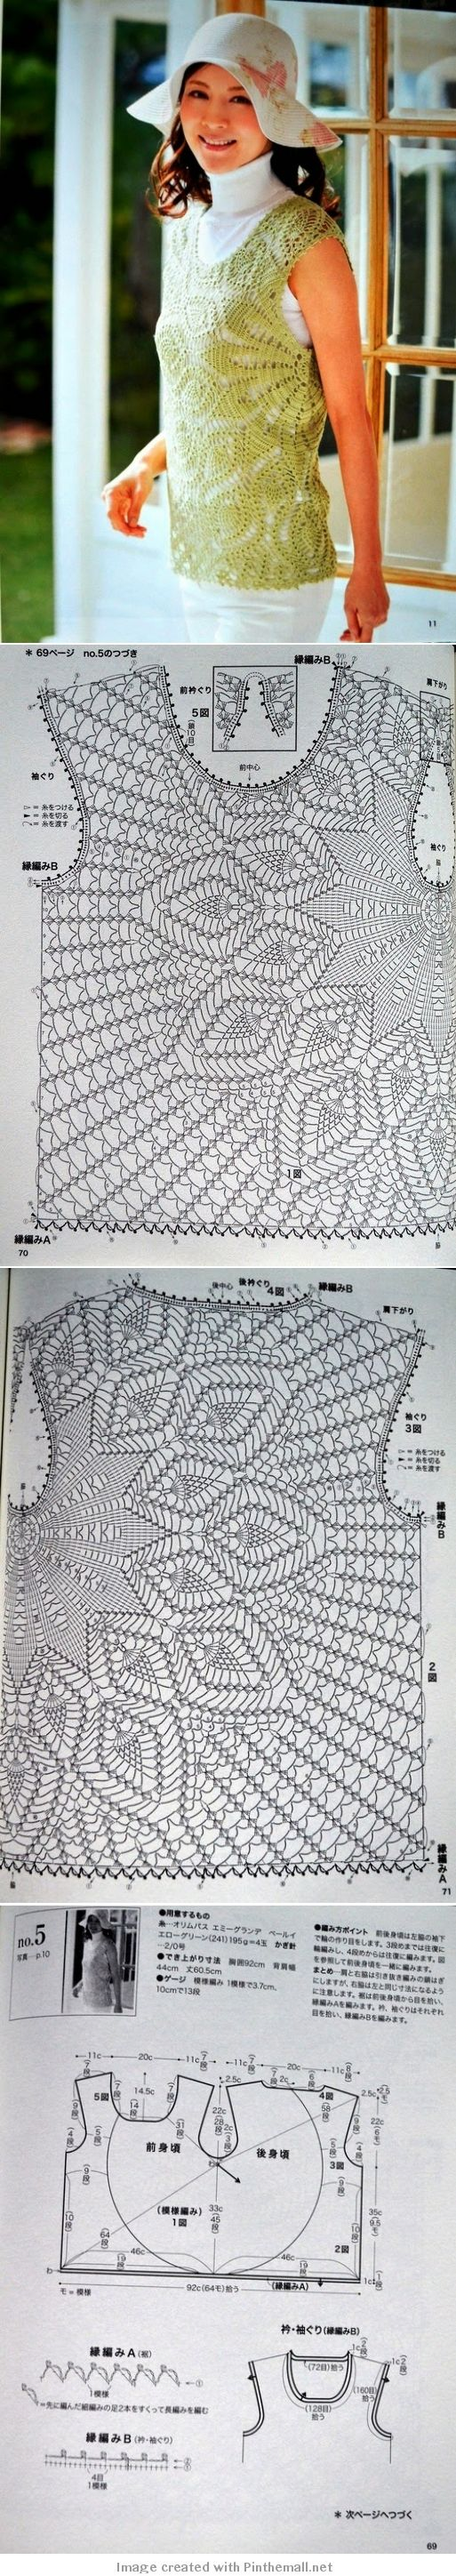 1560 best crochet .-. gráficos - diagramas .-. images on Pinterest ...